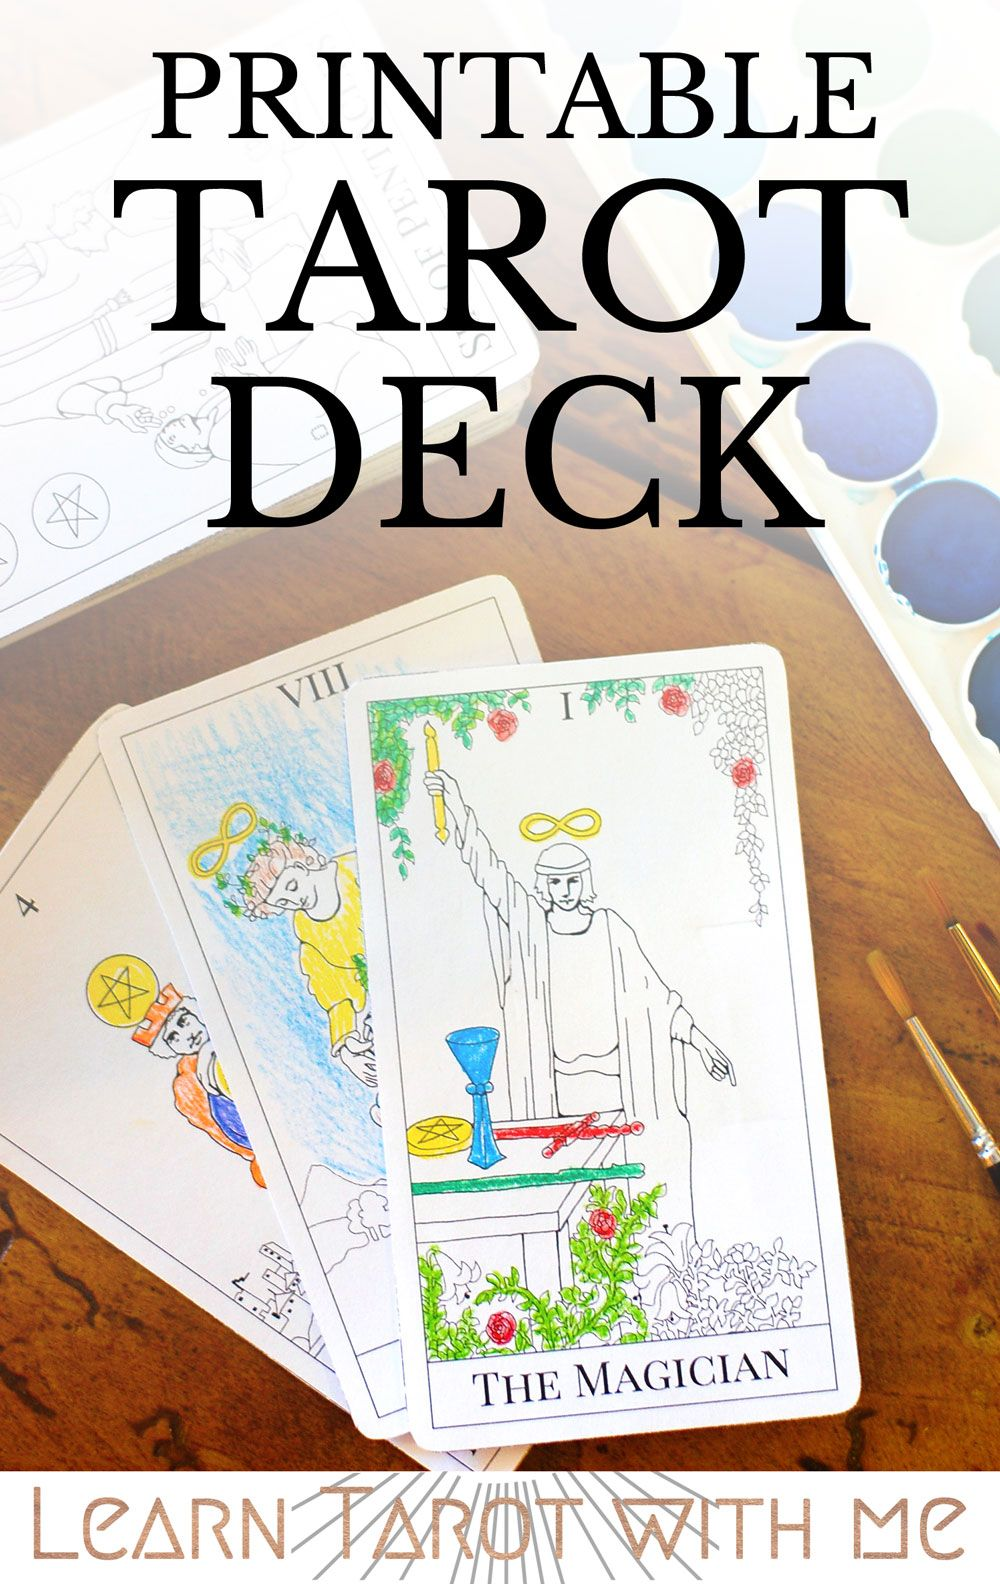 Printable Tarot Deck, A Tarot Card Deck And Printable